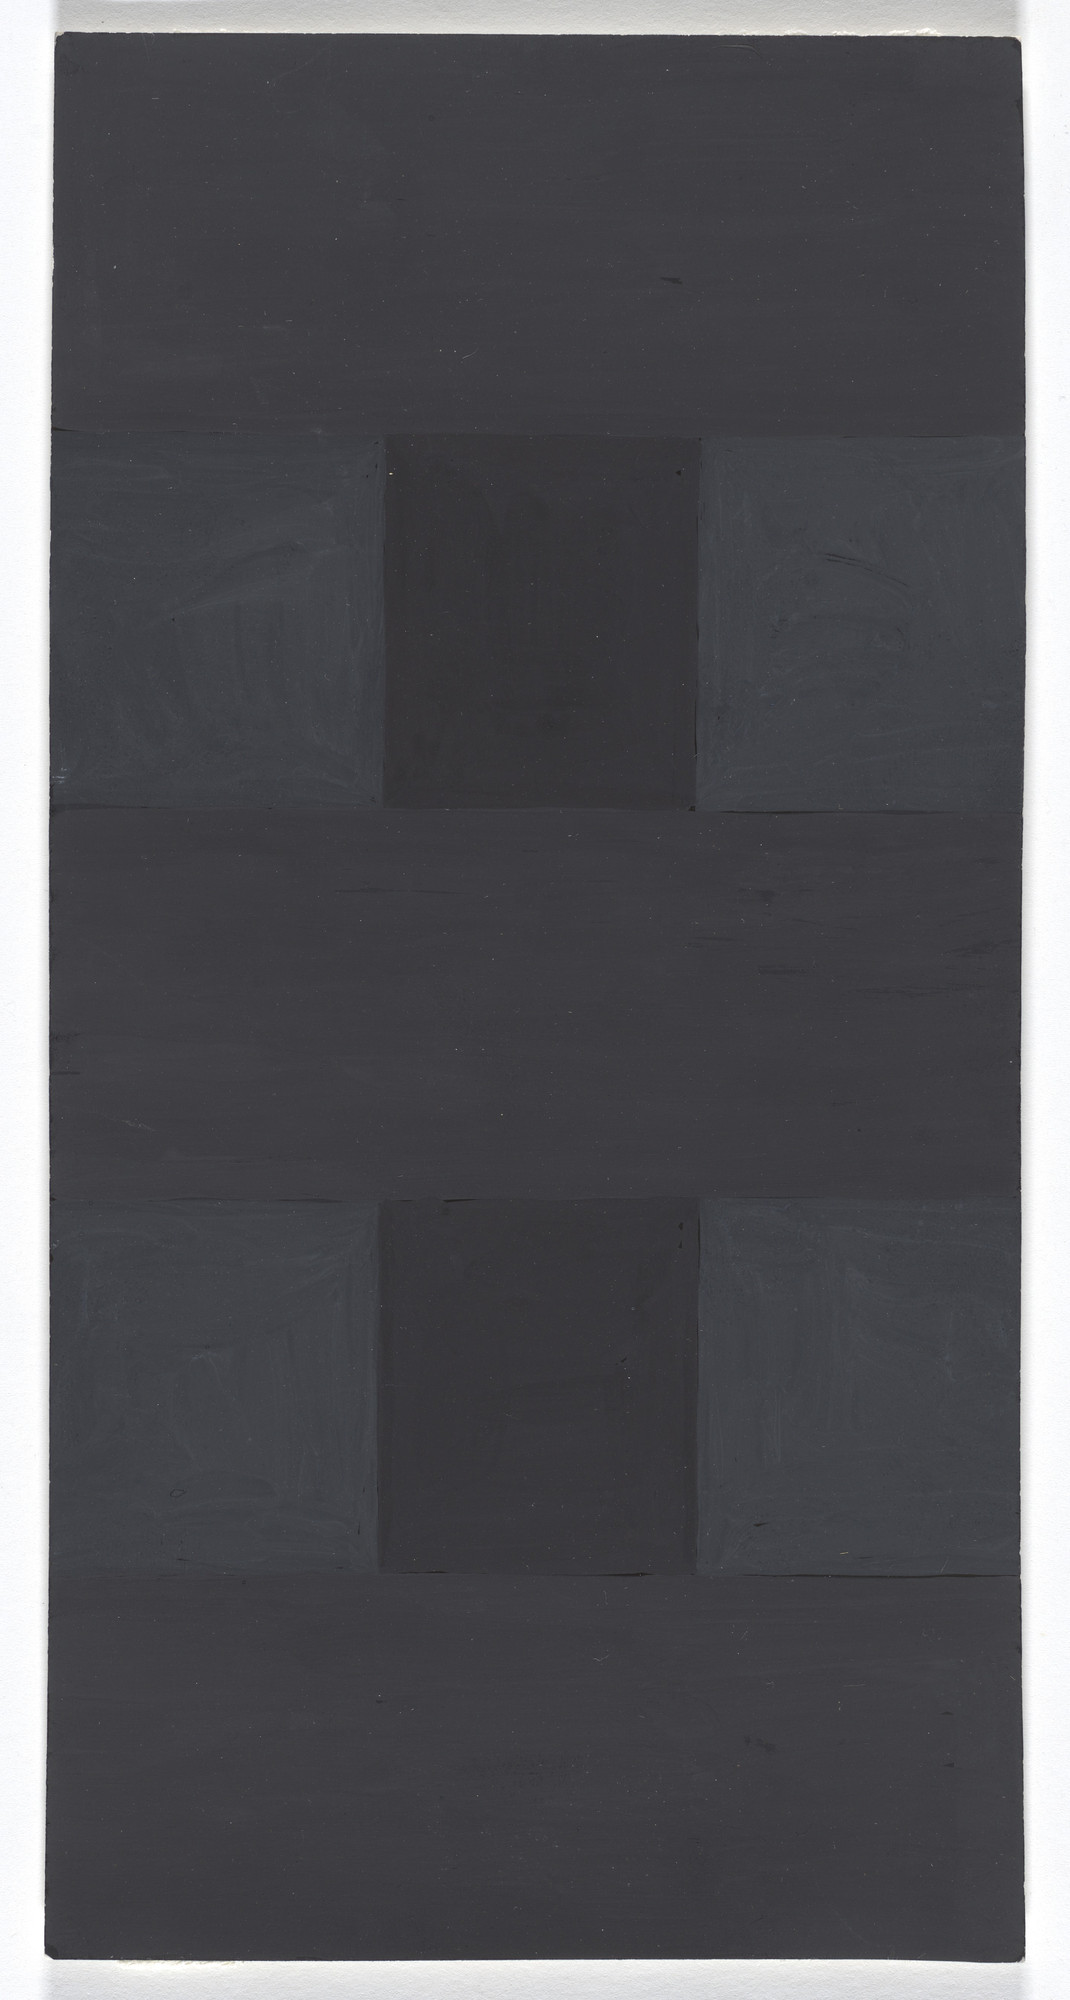 Ad Reinhardt. Abstract Painting. c. 1966